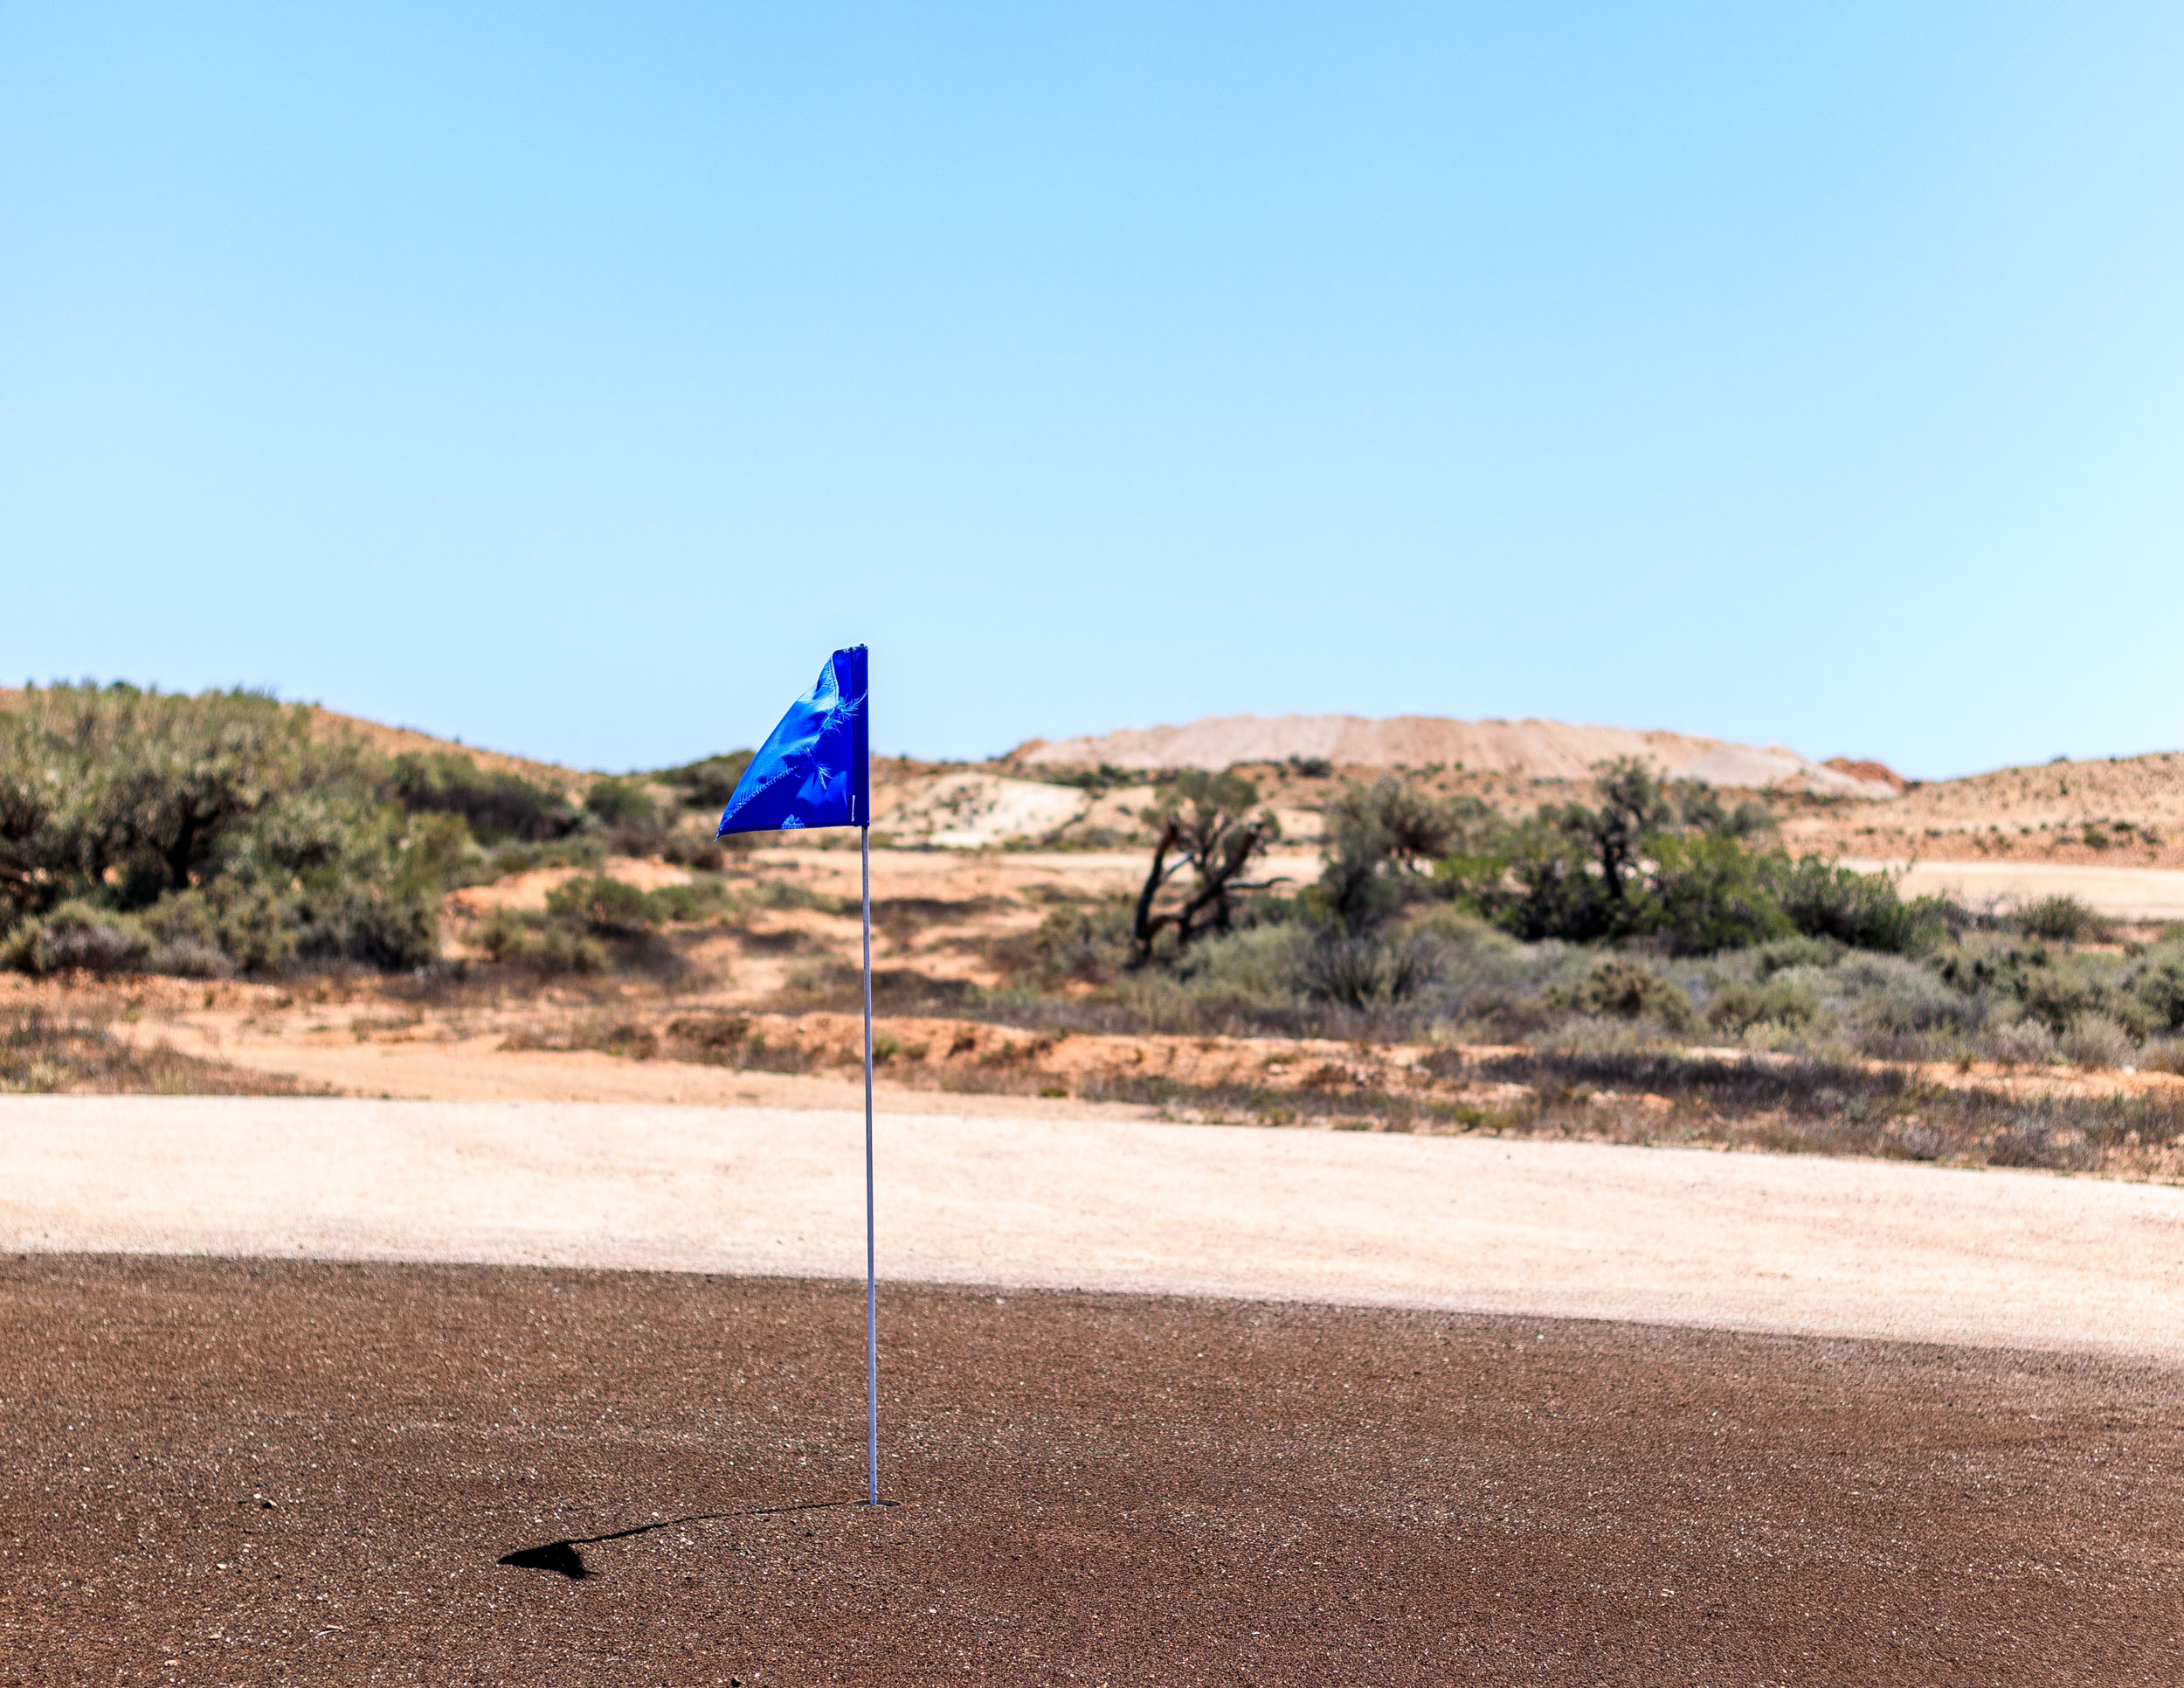 Best things to do in Coober Pedy: Golf Course at Coober Pedy